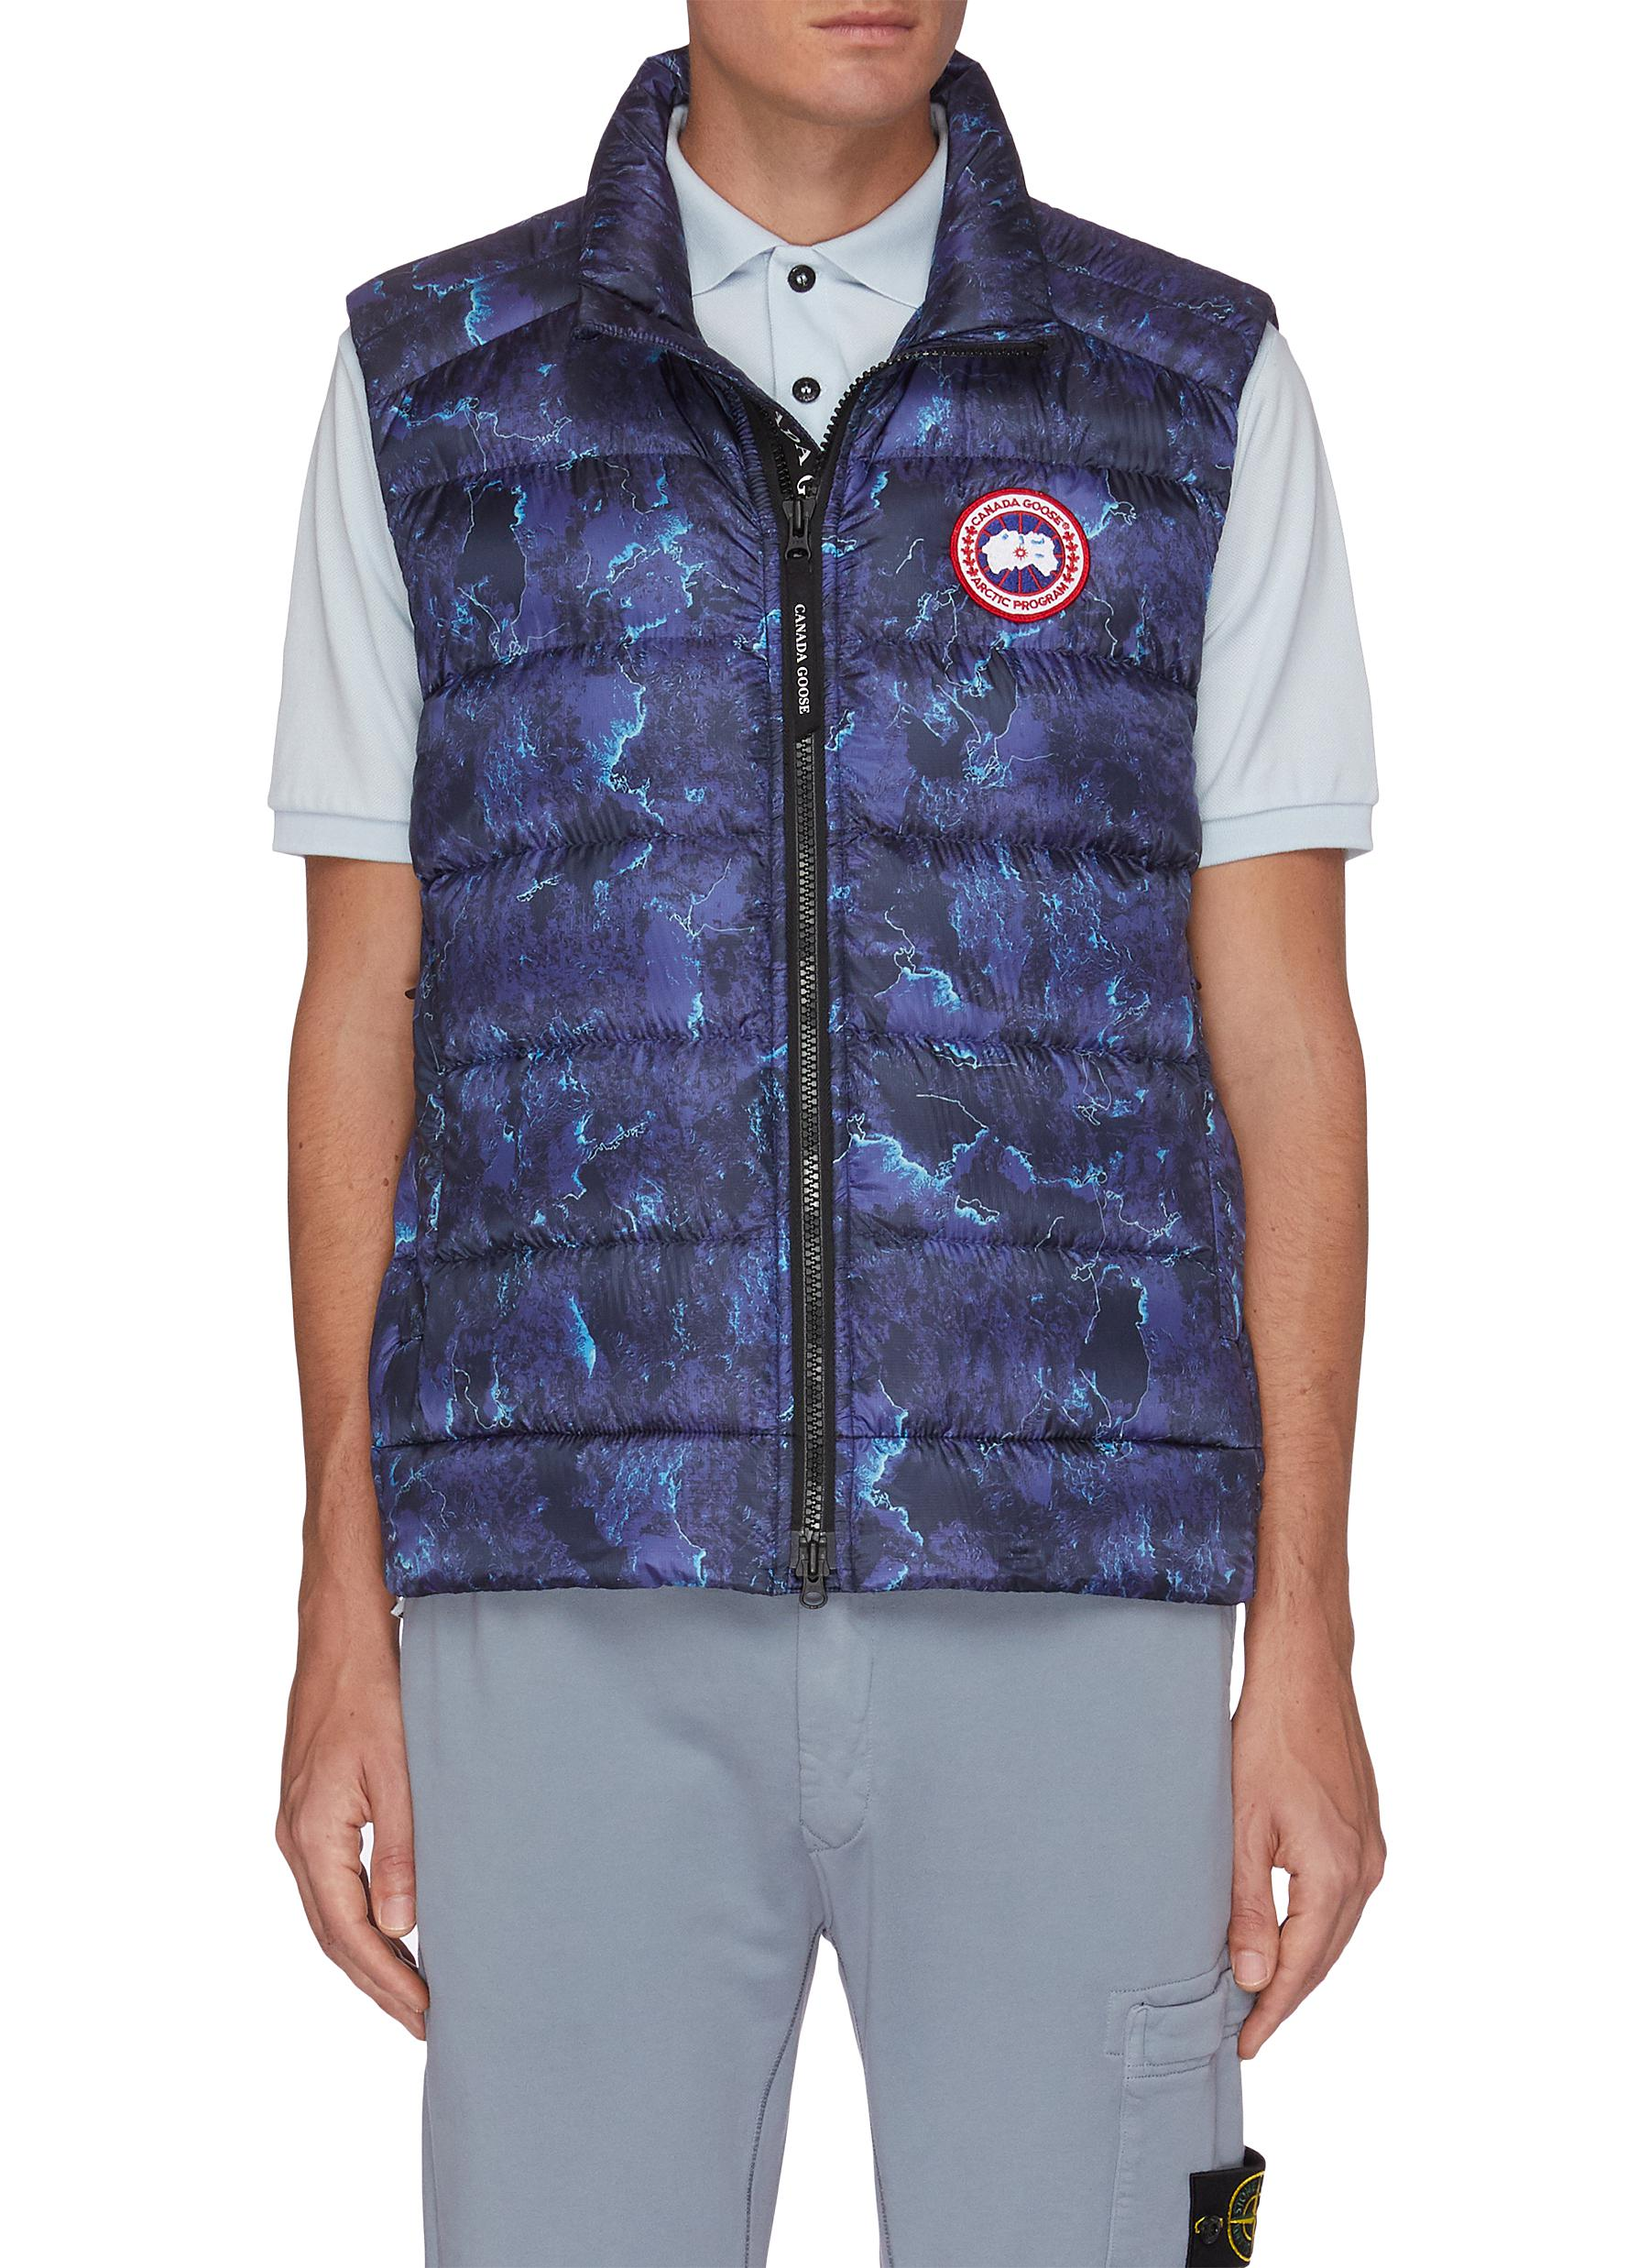 Canada Goose 'CROFTON' PACKABLE ALL-OVER GRAPHIC PRINT DOWN VEST